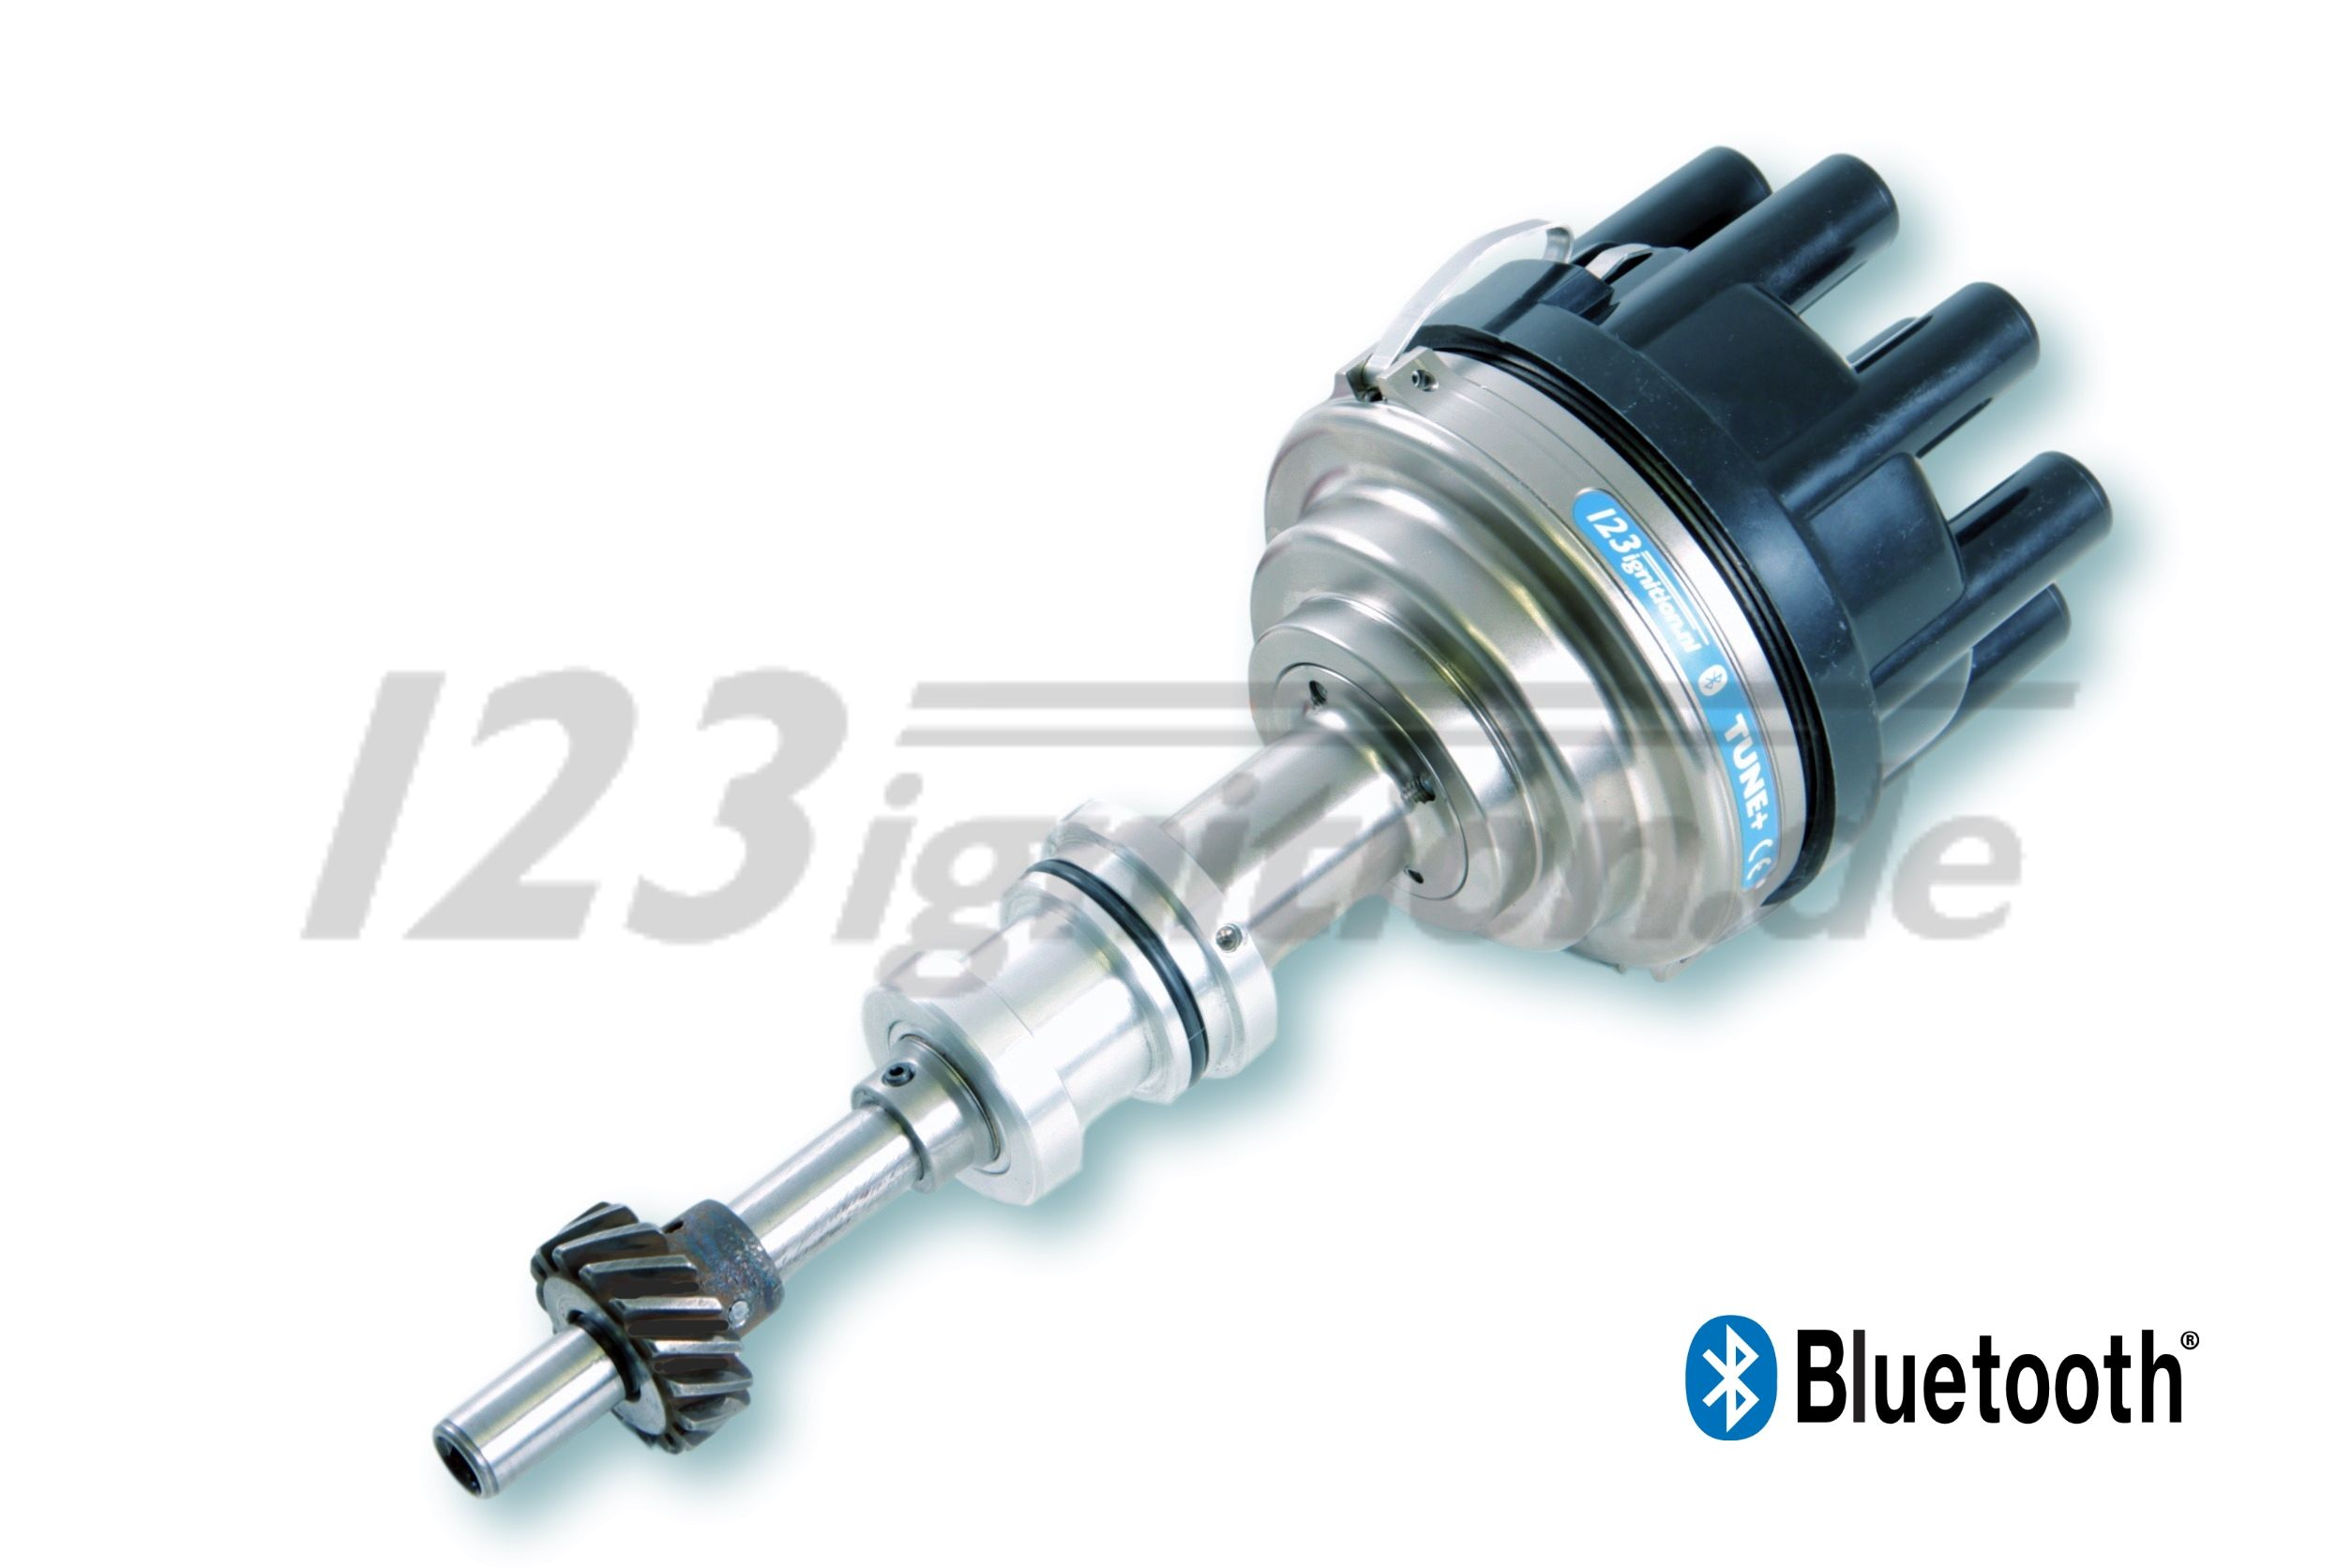 123\TUNE+ Bluetooth Zündverteiler für Ford 289 4.7L